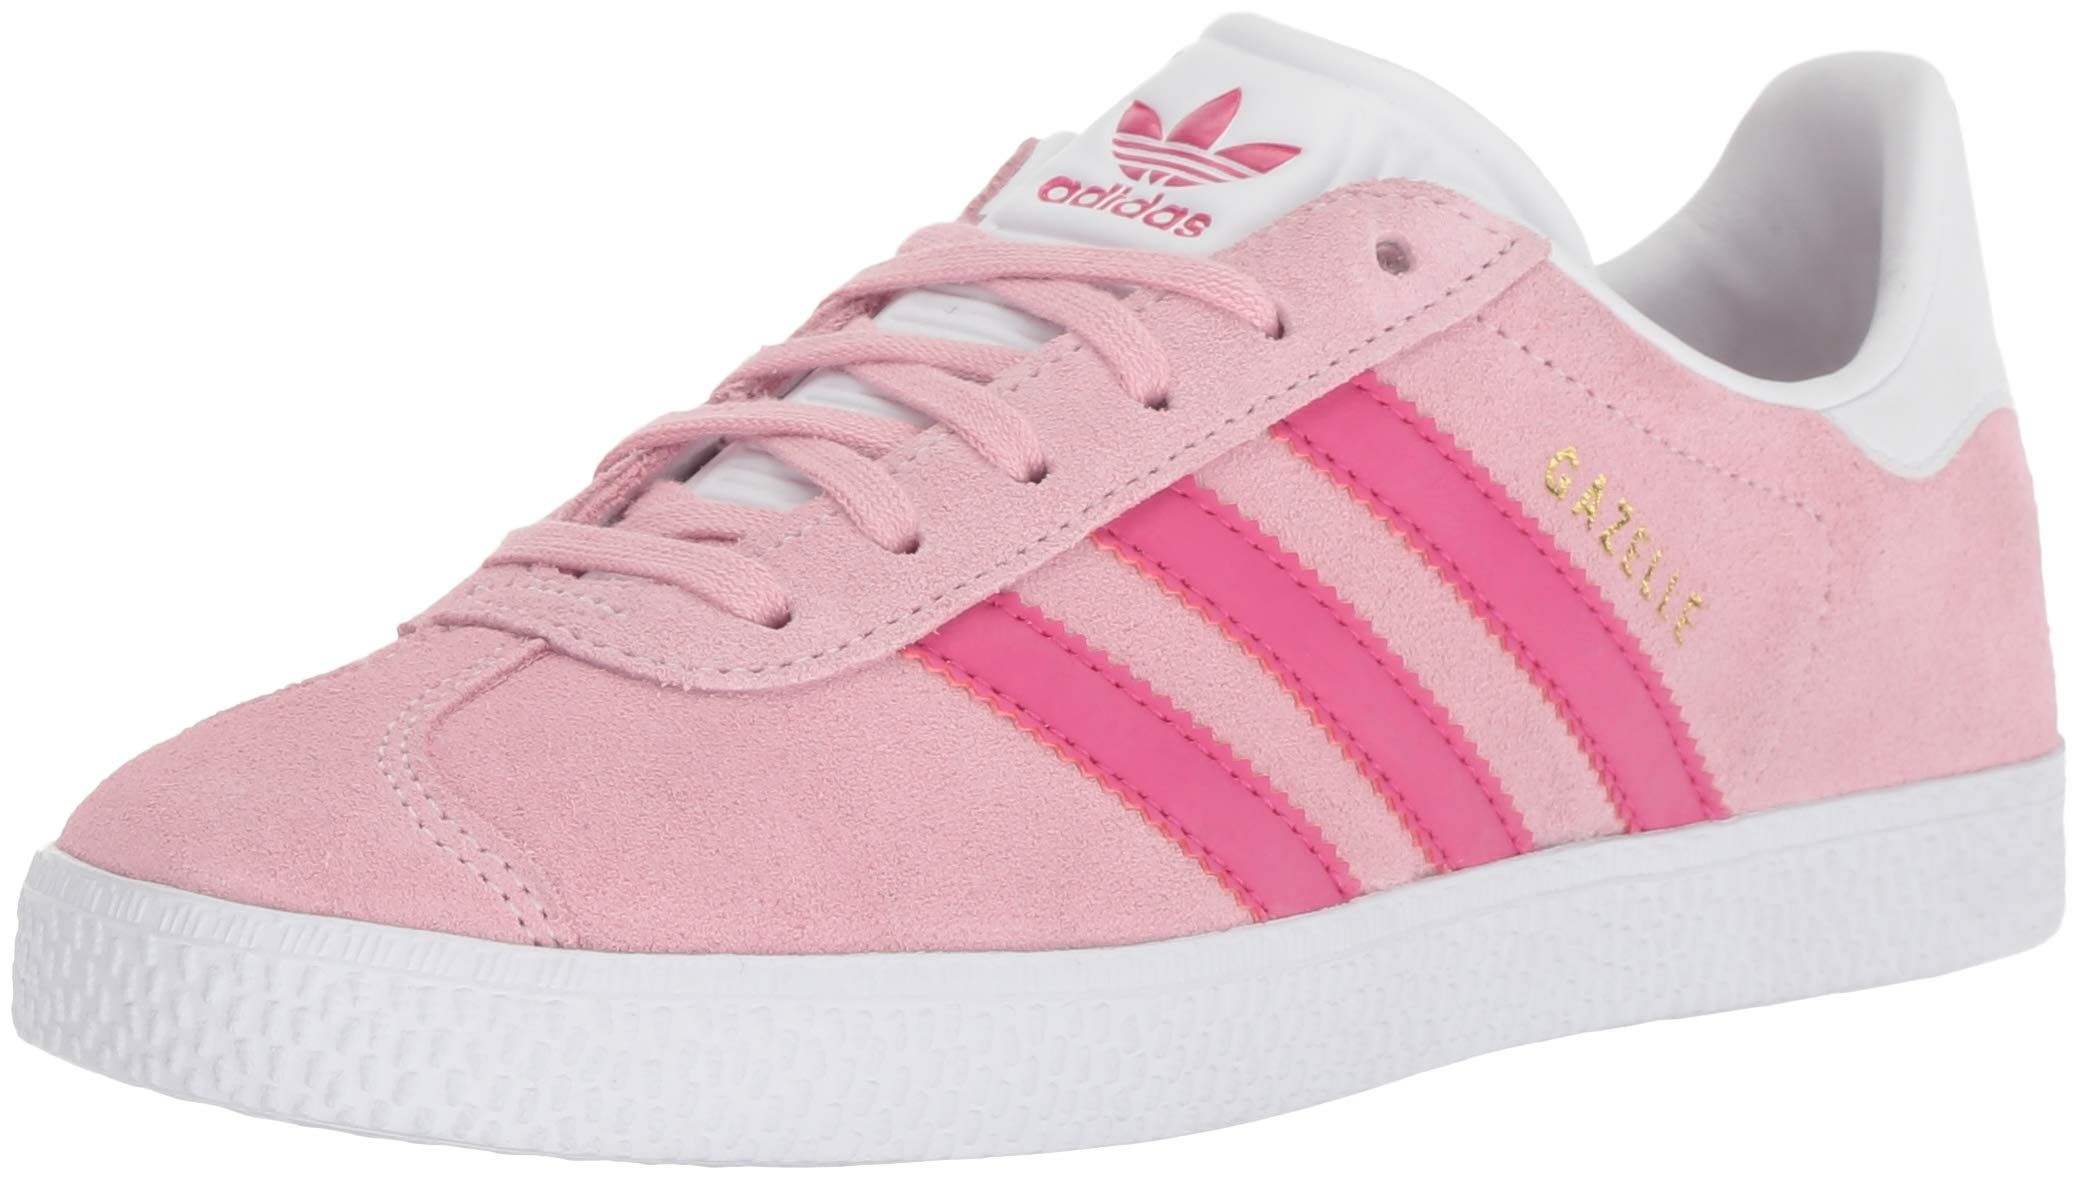 new concept c3d08 56d0c Galleon - Adidas Originals Unisex-Kids Gazelle Sneaker, Clear PinkReal  MagentaWhite, 6.5 M US Big Kid